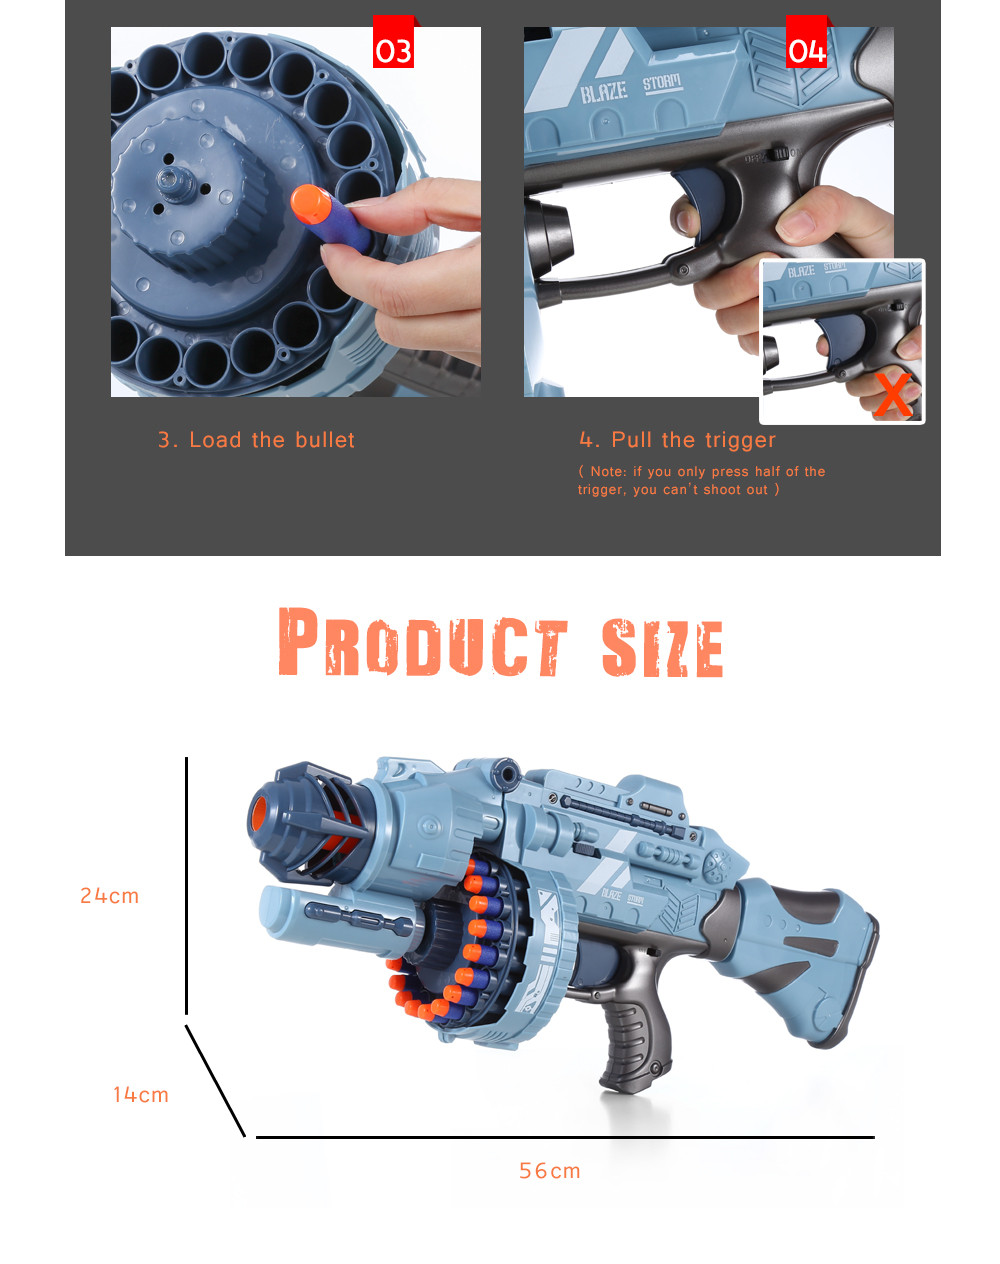 ZECONG TOYS 7076 Electric 20 Soft Bullet Gun Pistol Long Range Military Model Children Toy- Blue